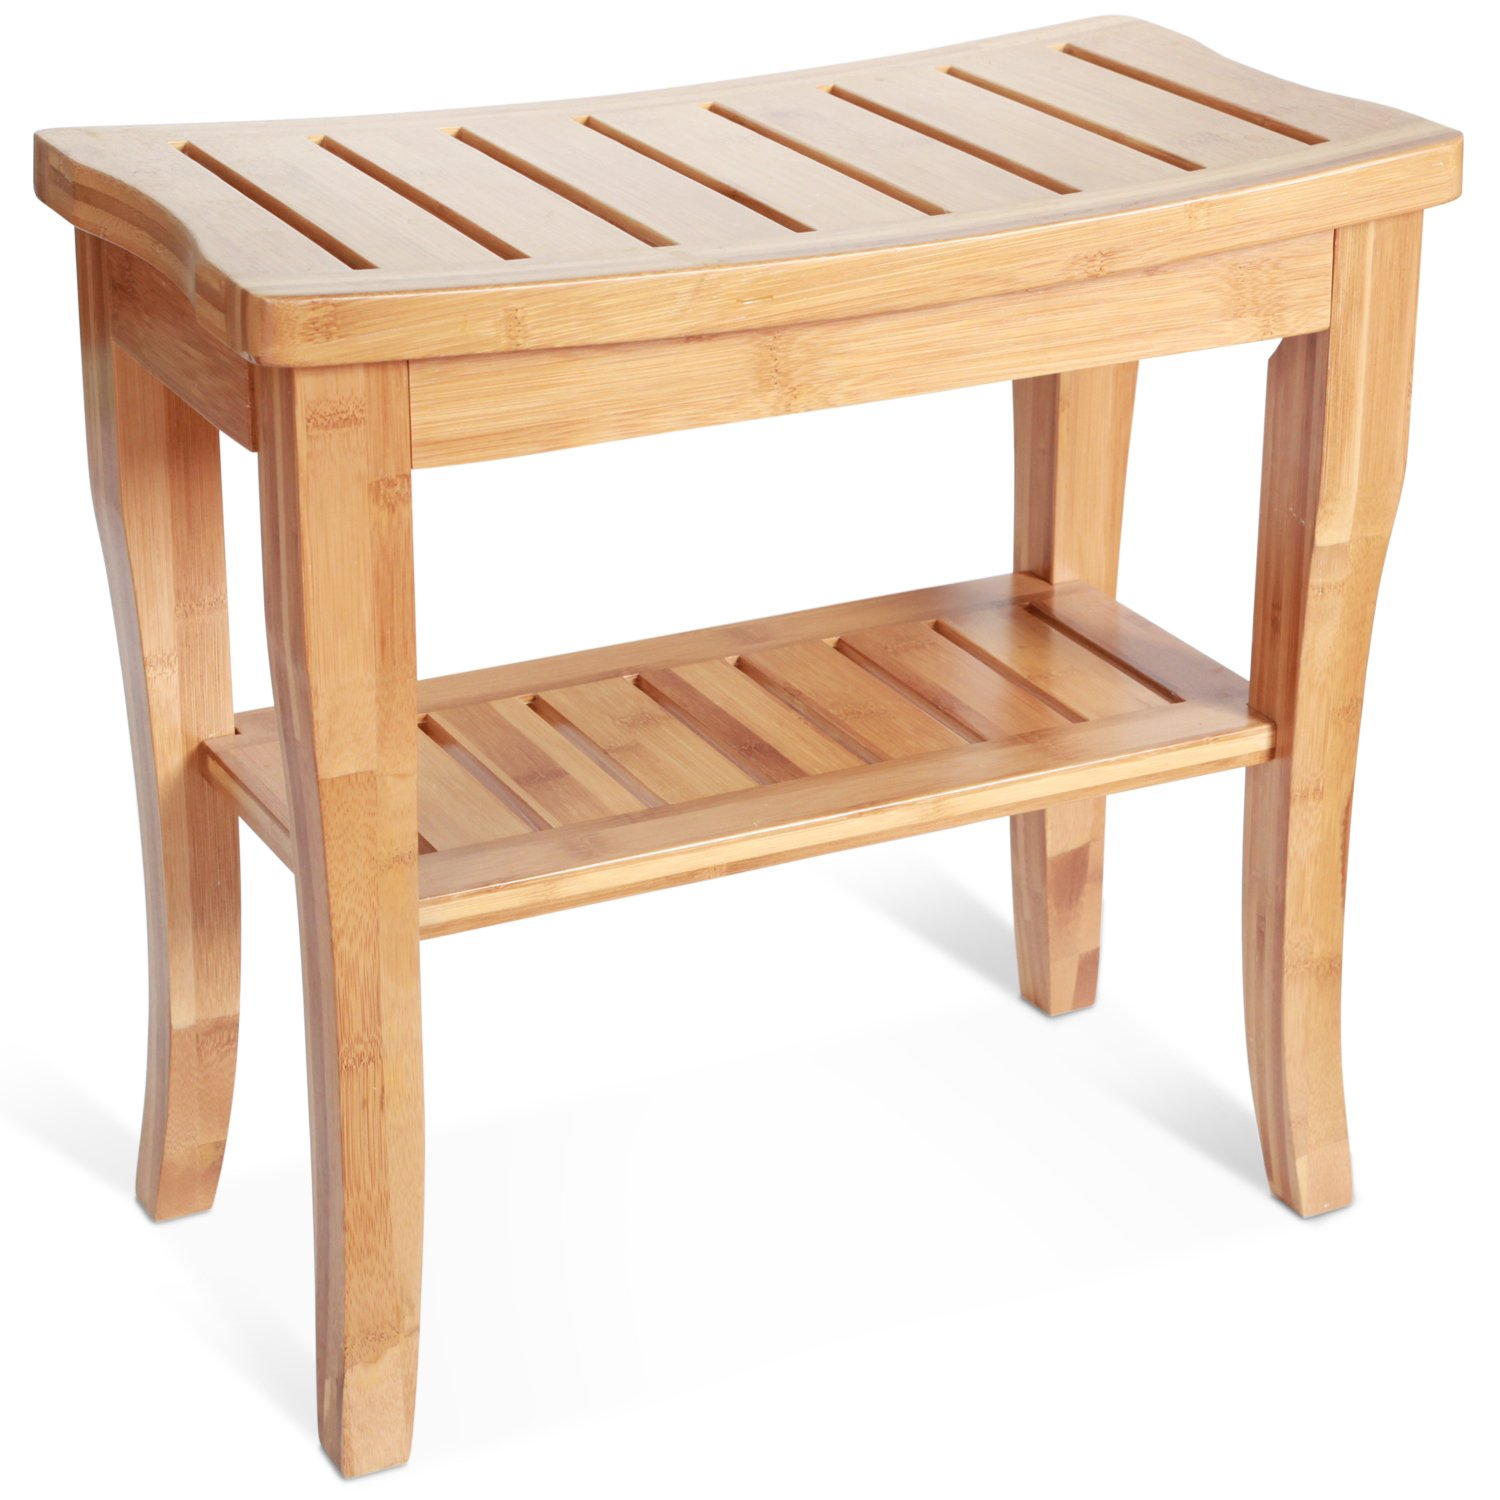 Amazon.com: ToiletTree Products Deluxe Wooden Bamboo Shower Seat Bench With  Underneath Storage Shelf: Home U0026 Kitchen